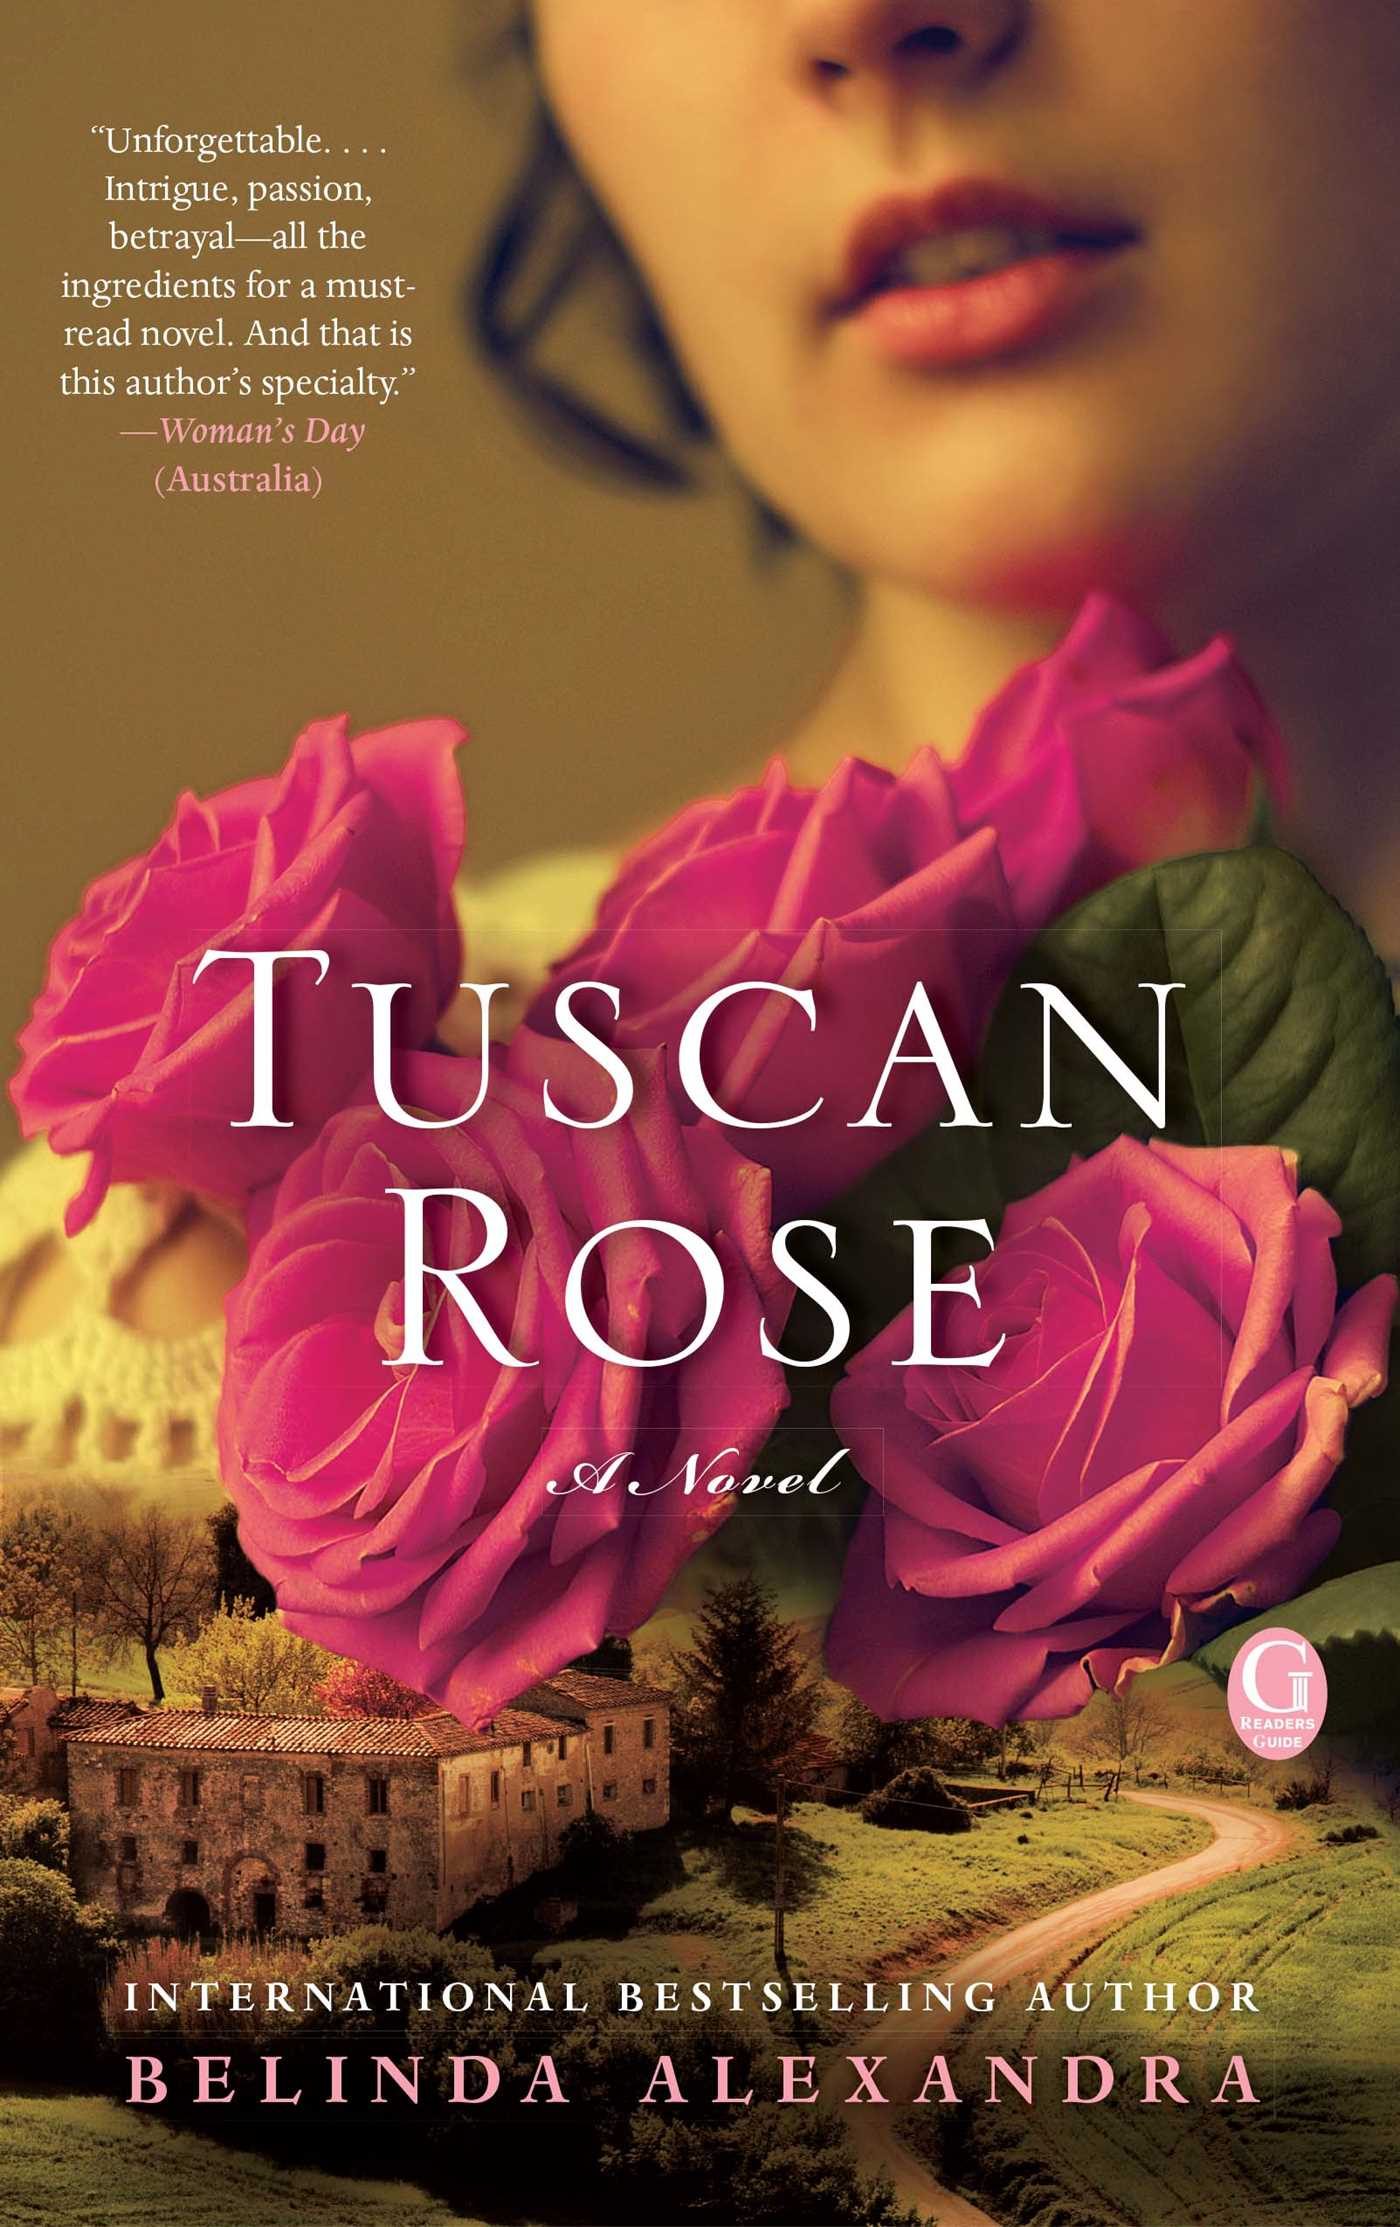 Tuscan-rose-9781451679076_hr